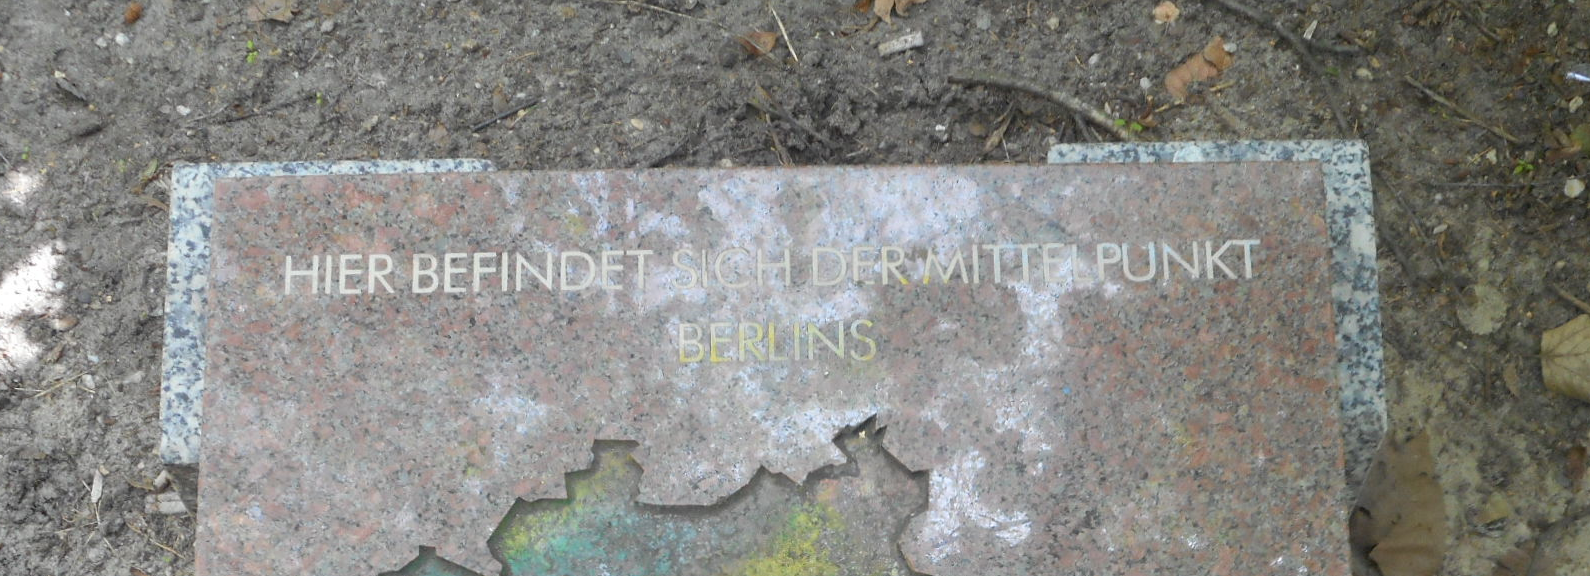 berlins-geographical-center-2